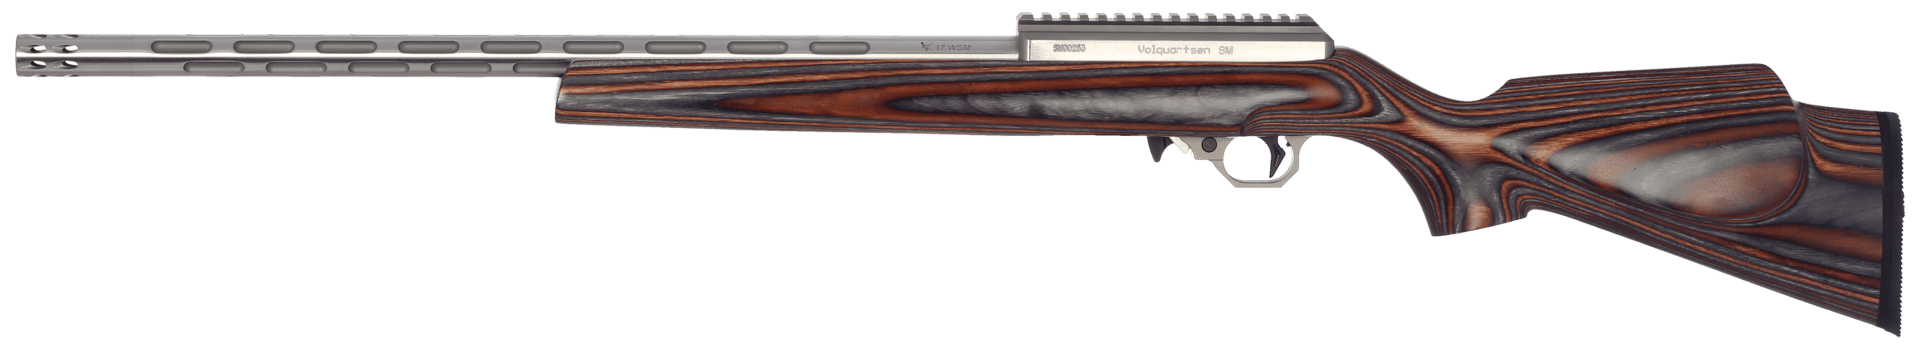 883-if_5 wsm with brown_gray sporter